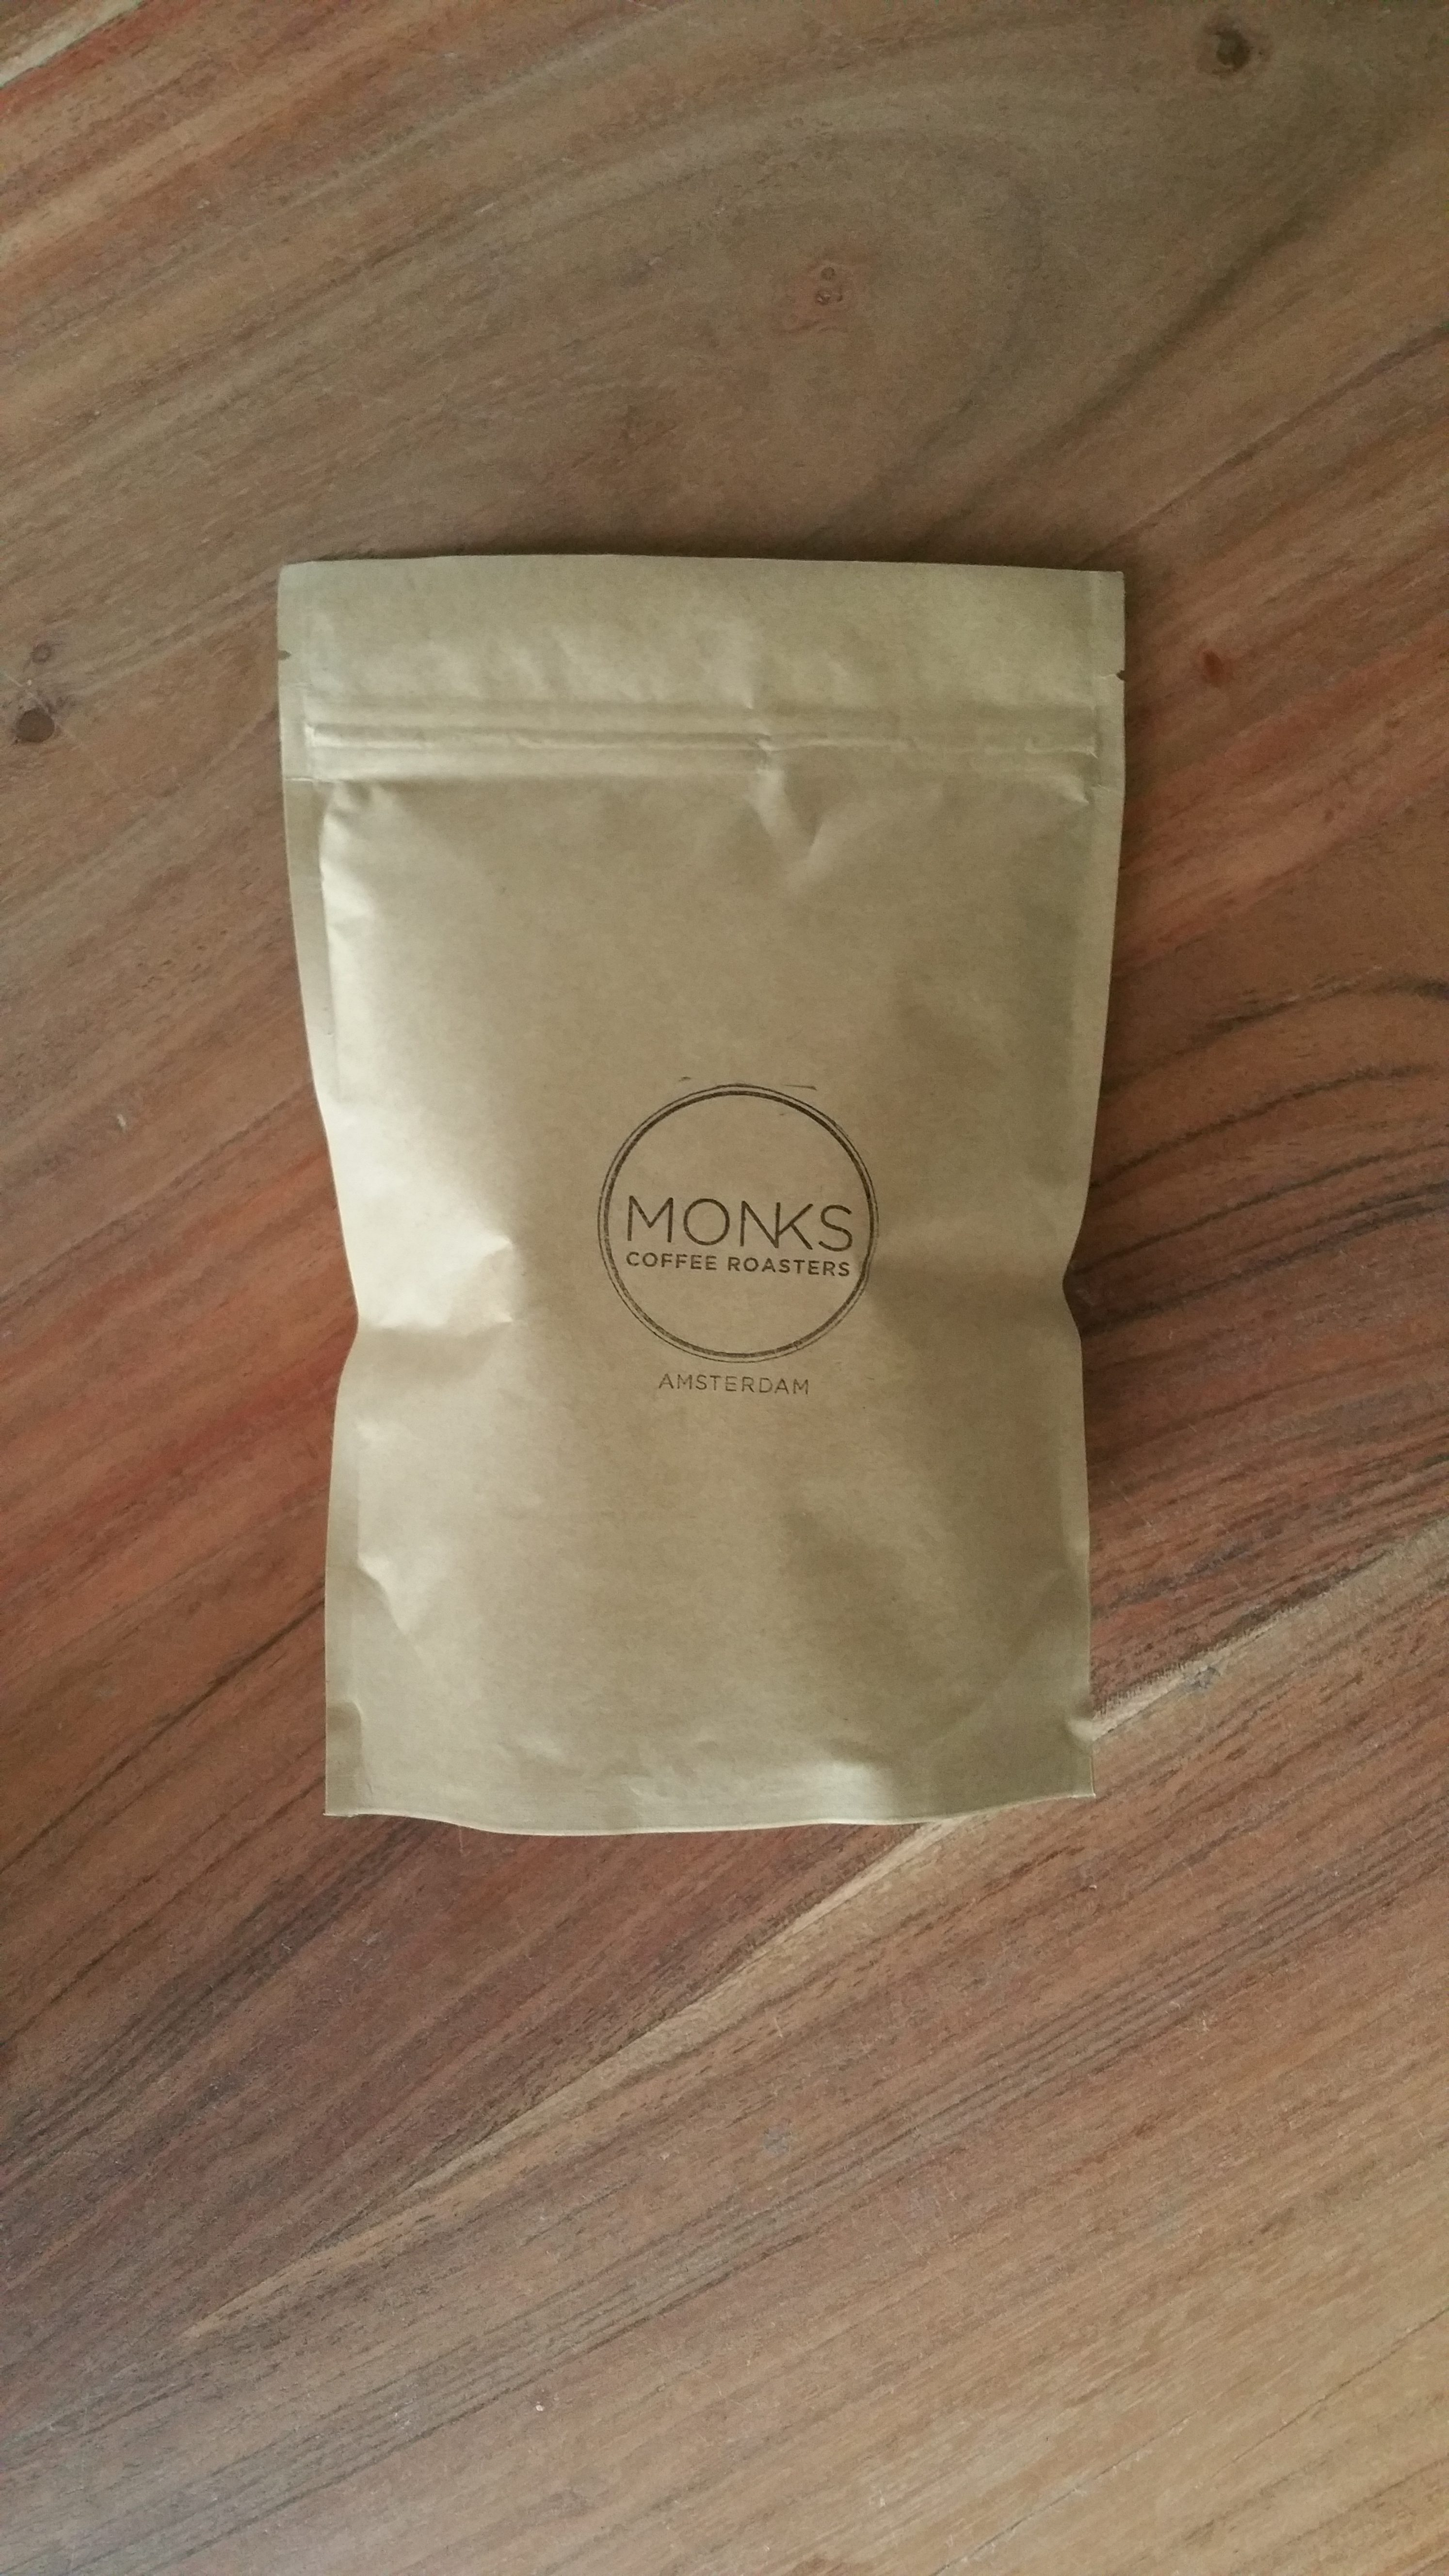 Monks Coffee Roasters shop front